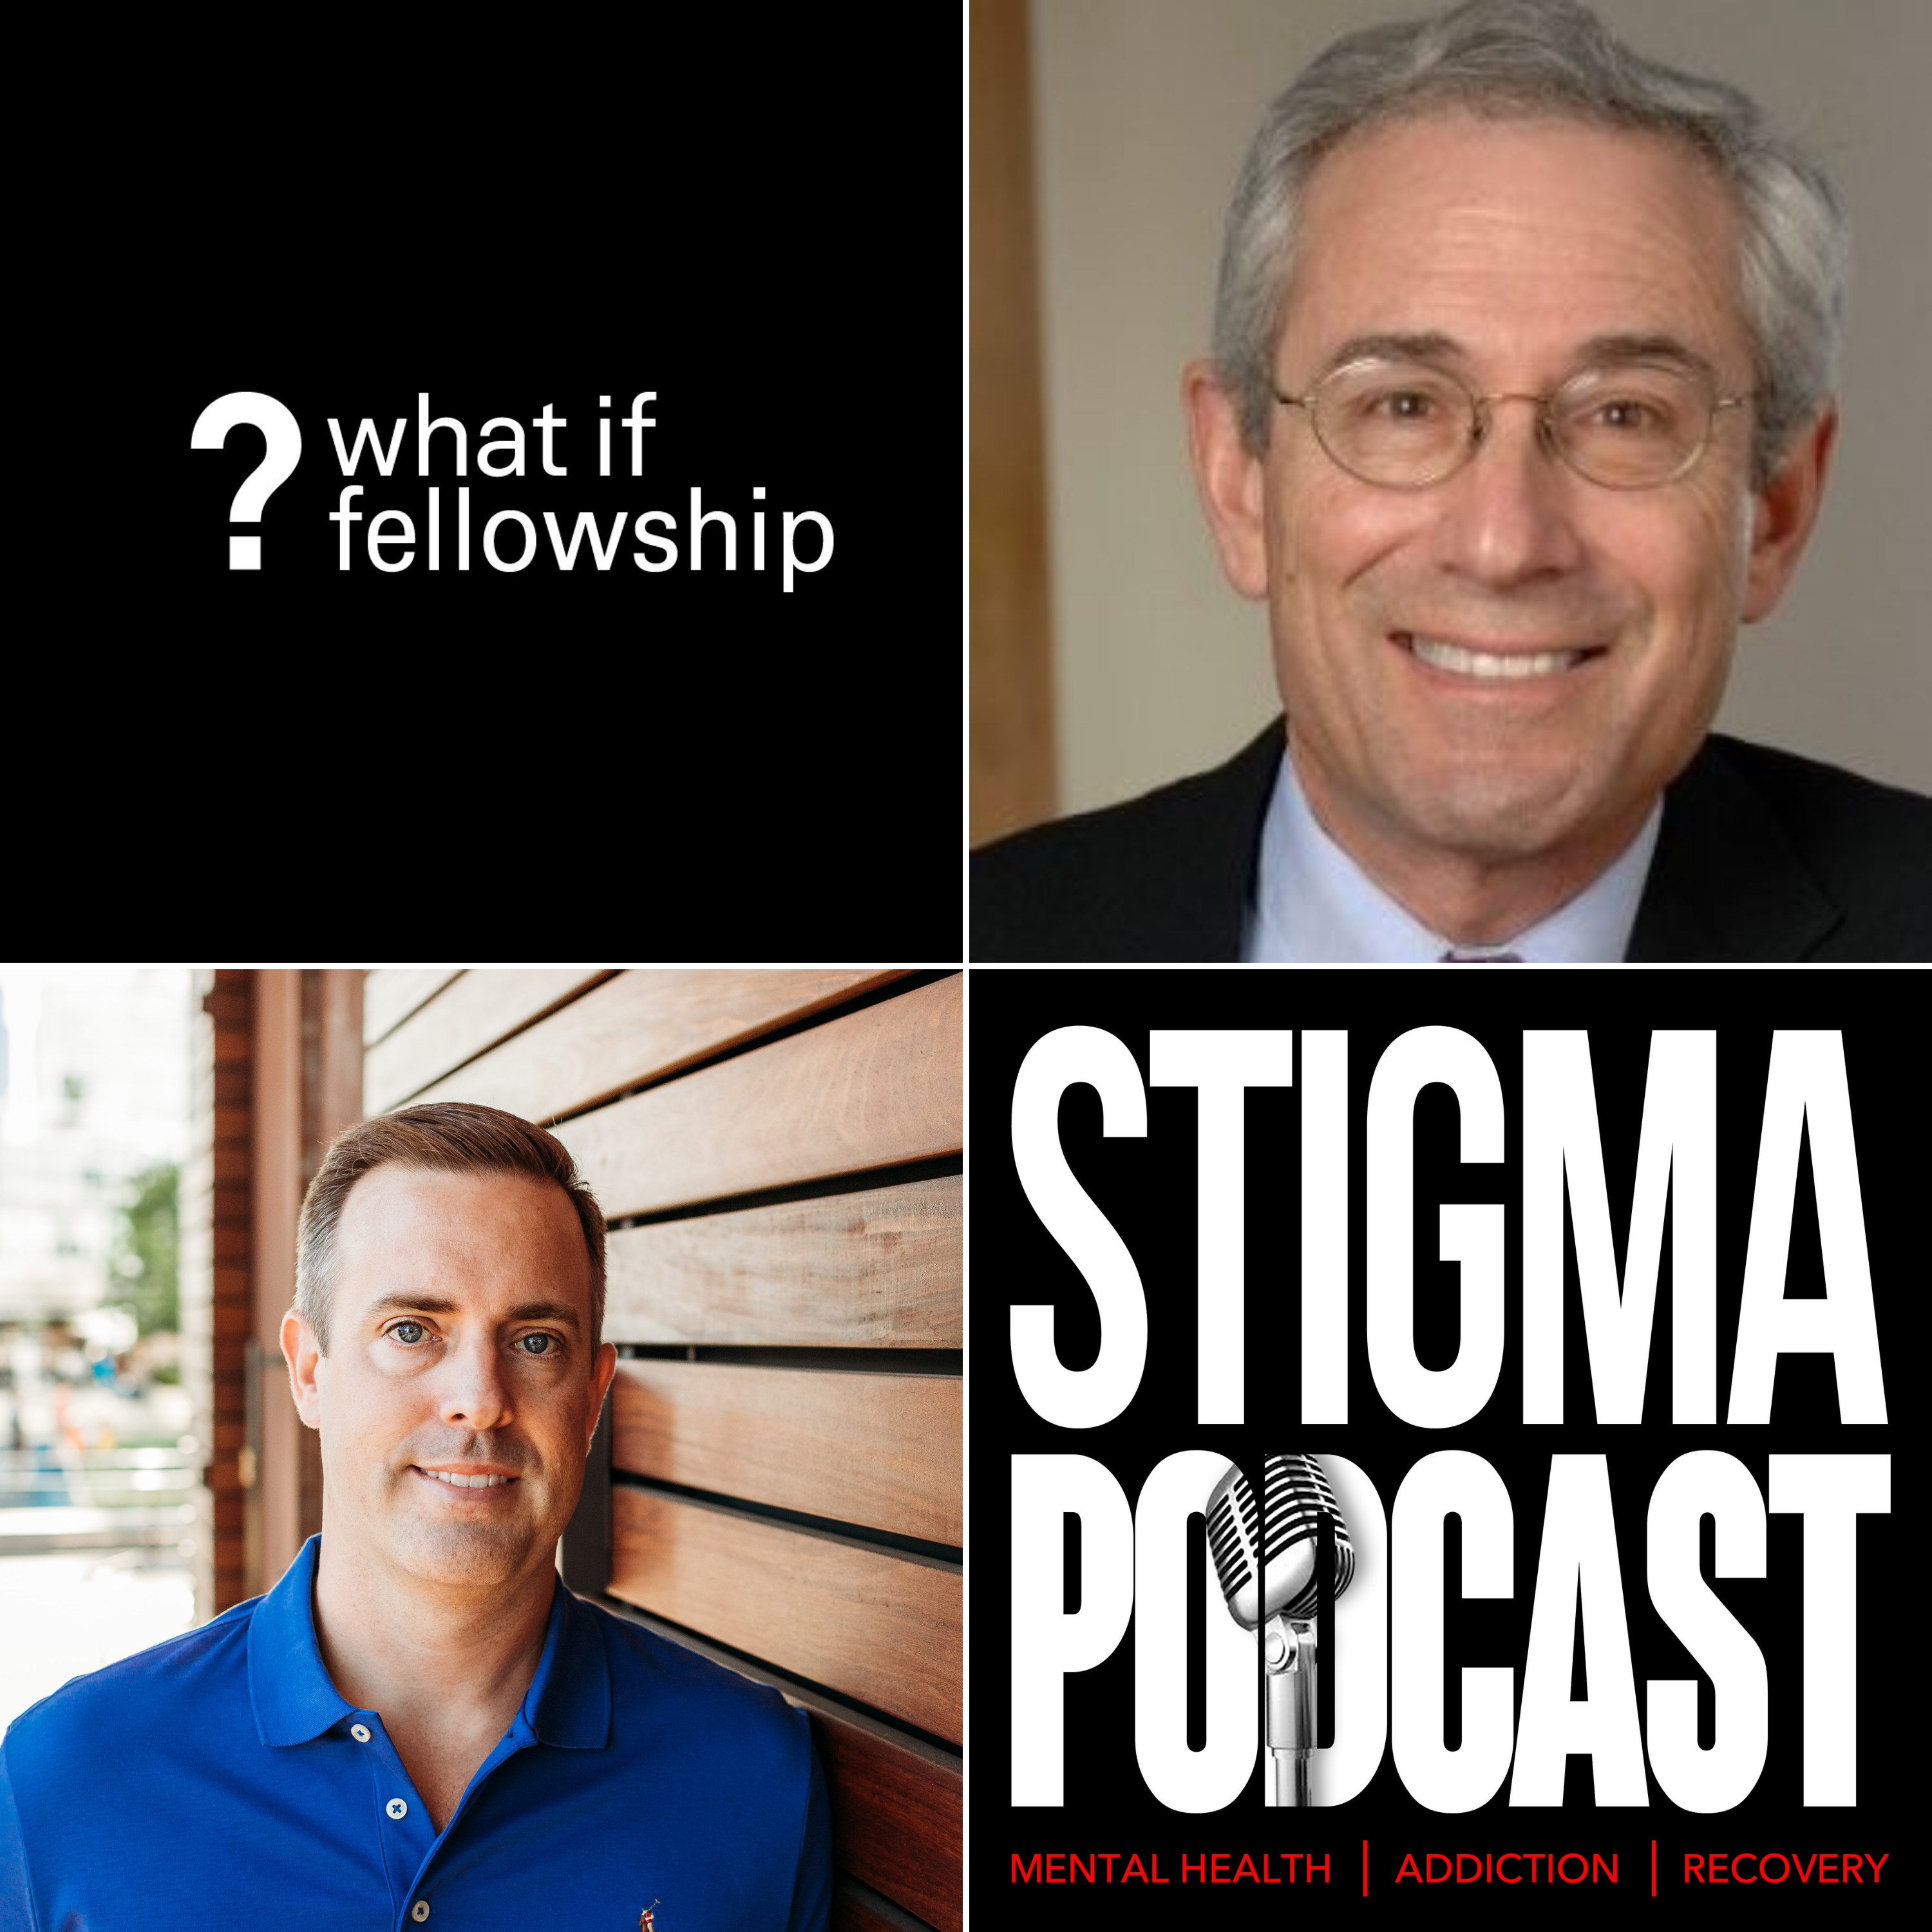 Stigma Podcast - Mental Health - #73 - Tom Insel Addresses What If Fellowship Cohort #1 on The Future of Mental Health Care